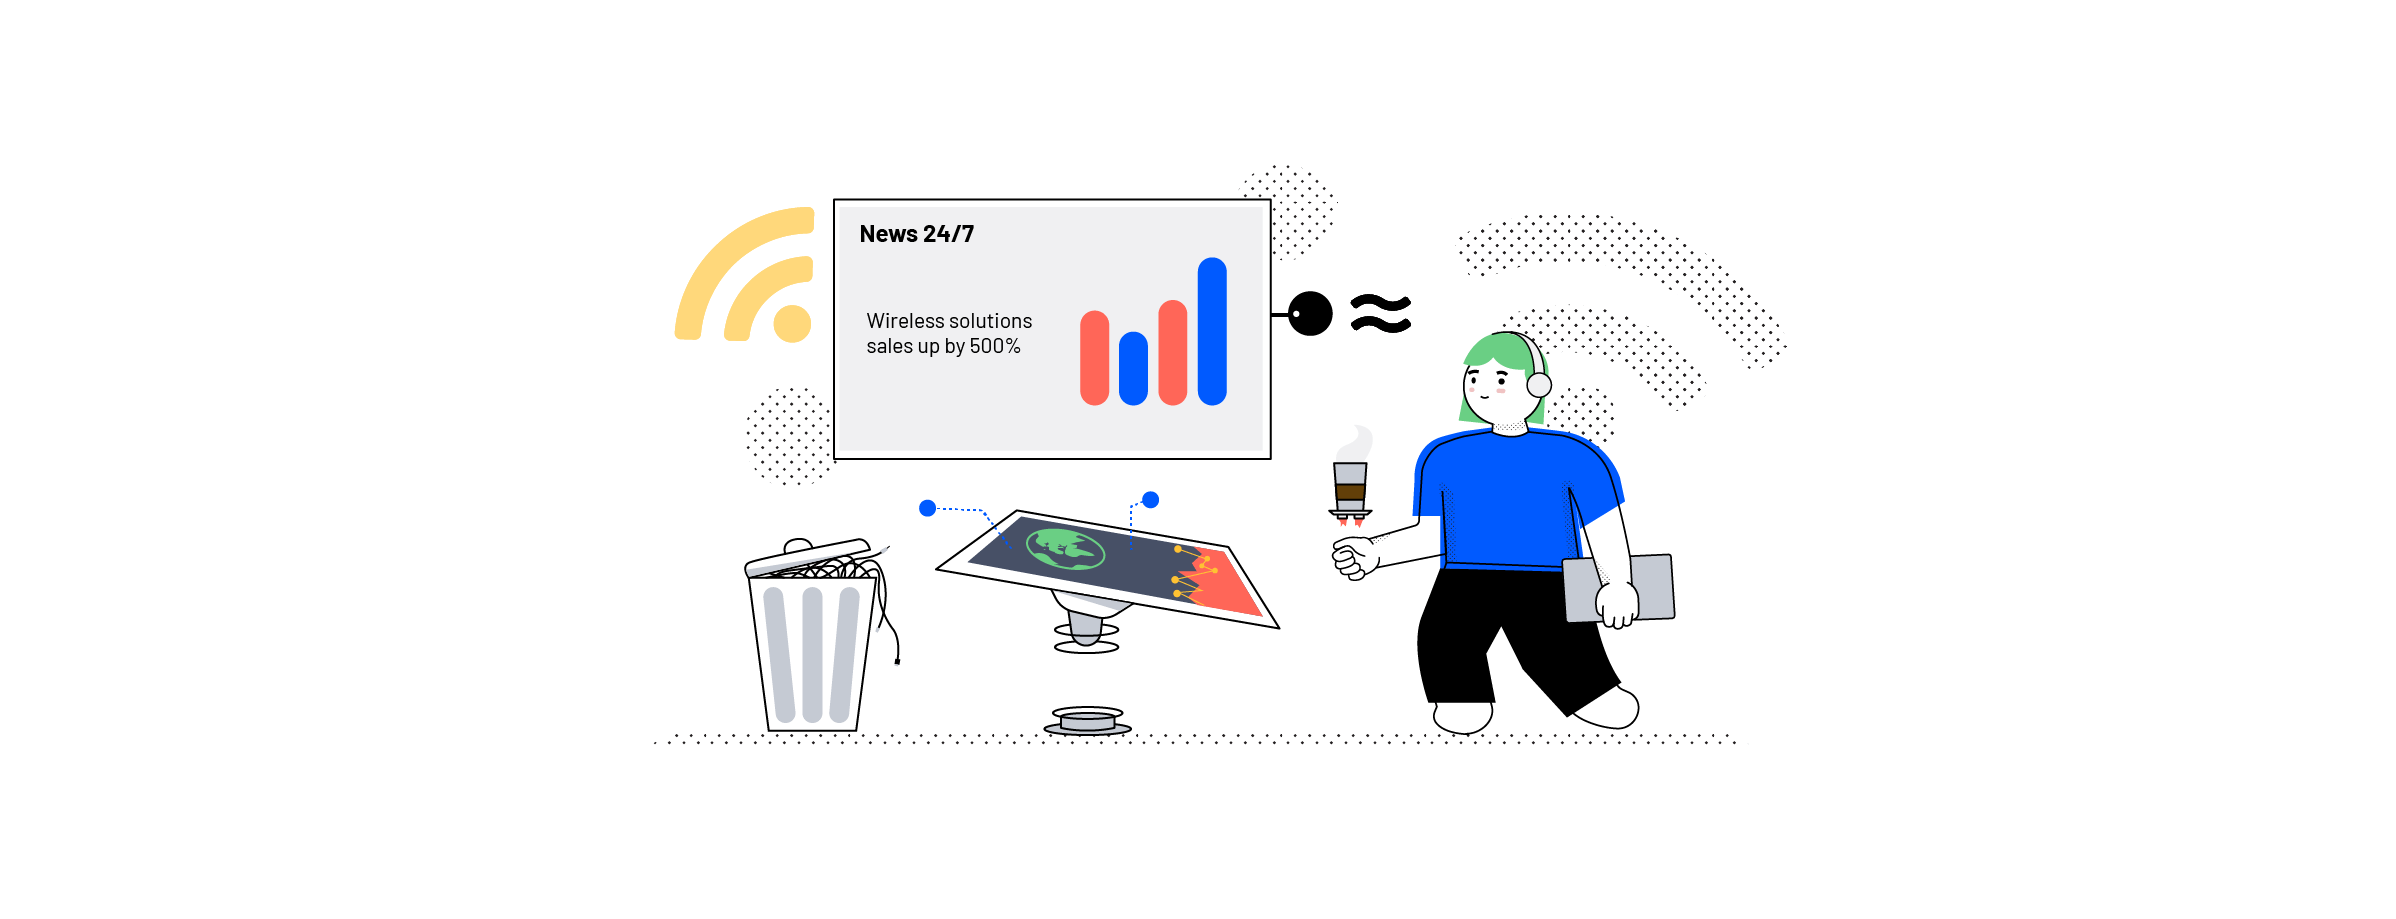 Image of office trends in 2019